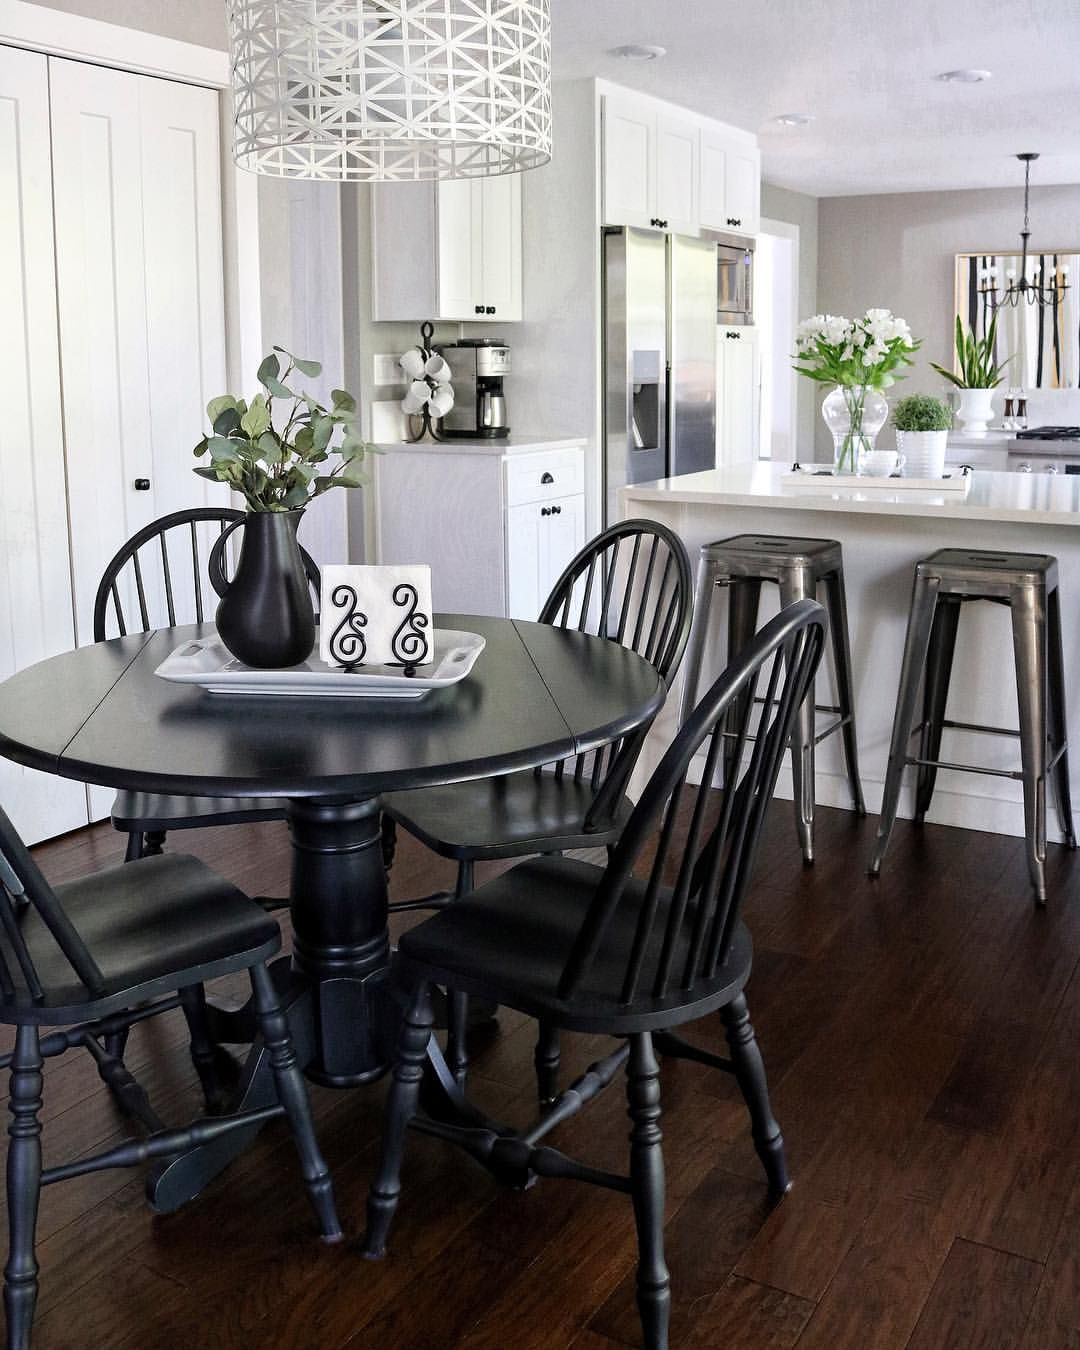 White Kitchen With Eat In Area Black Table Black Kitchen Table Eat In Kitchen Table Black Breakfast Tables